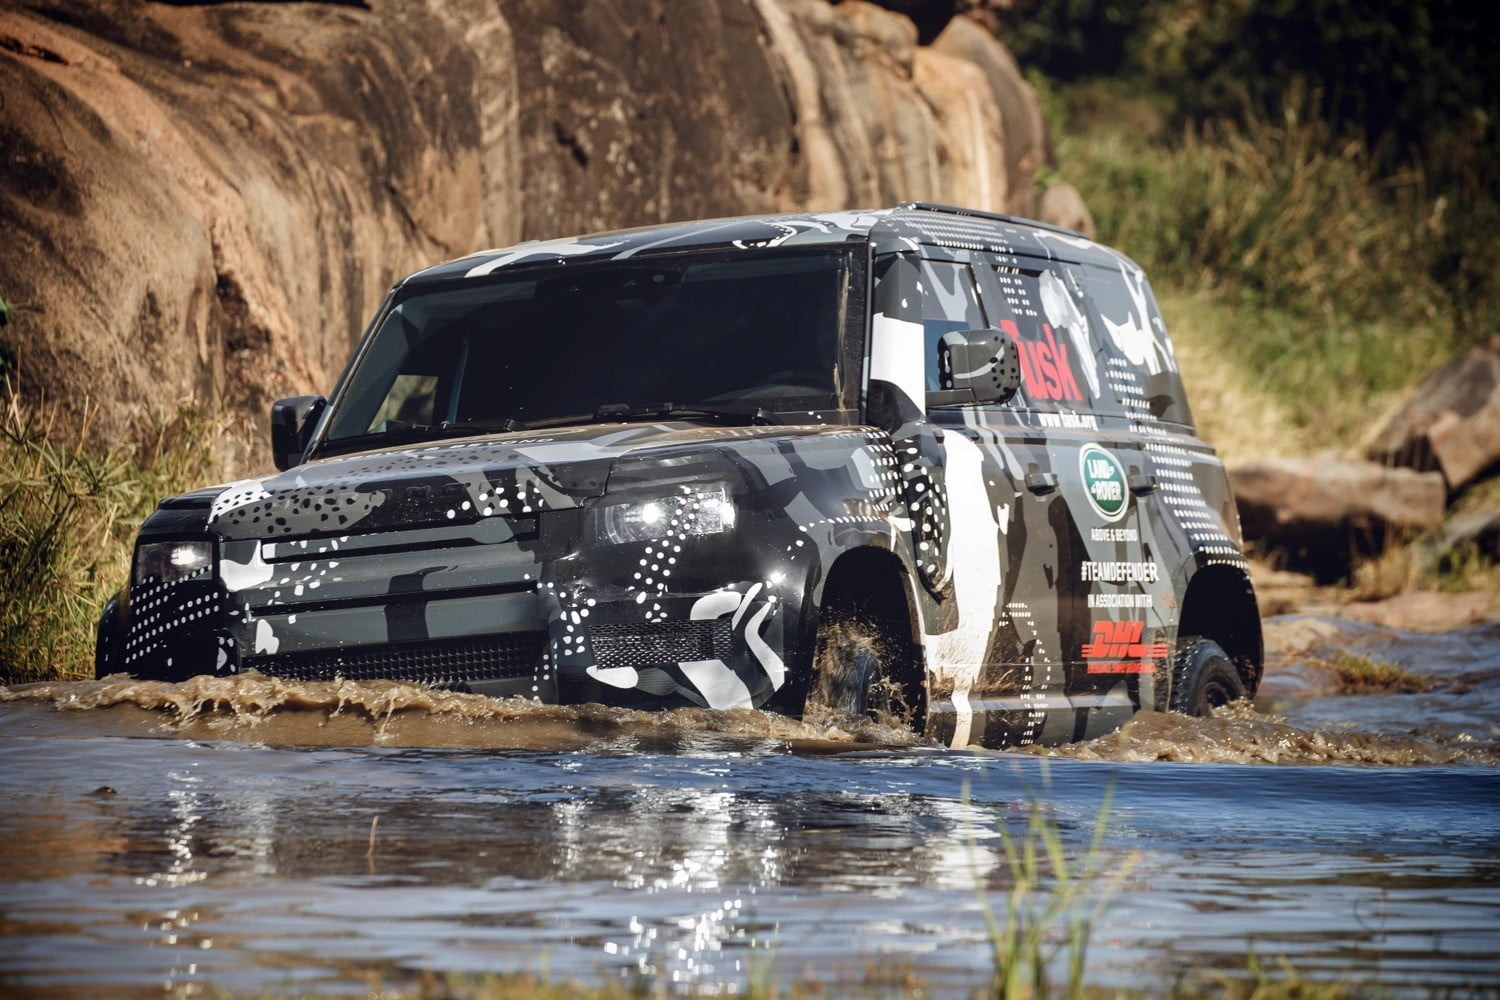 New Land Rover Defender off-roader goes on safari to prove its toughness